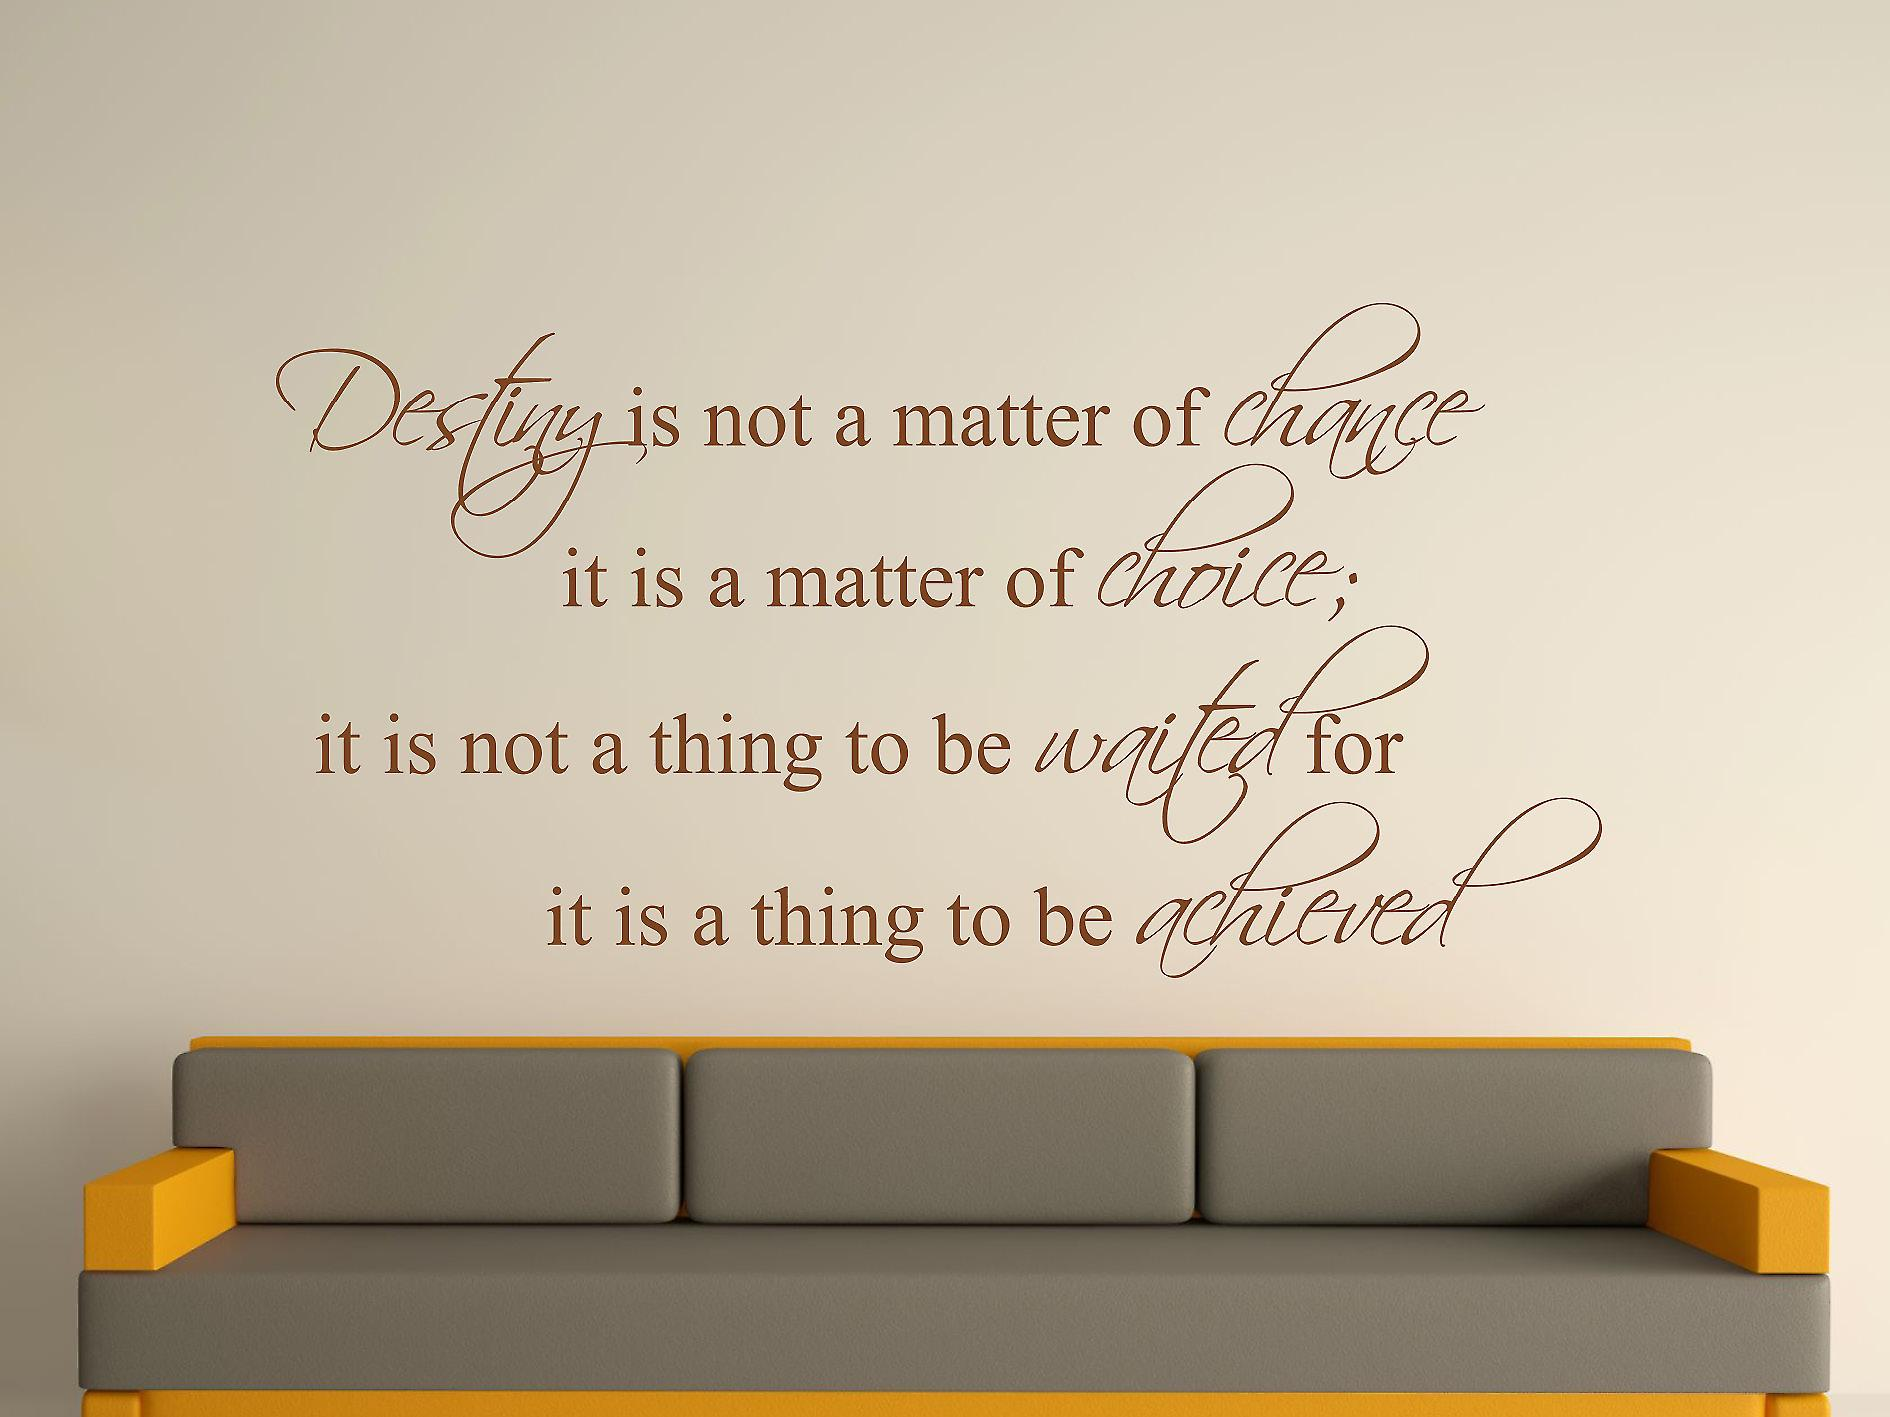 Destiny Is Not A Matter of Chance Wall Art Sticker - Brown